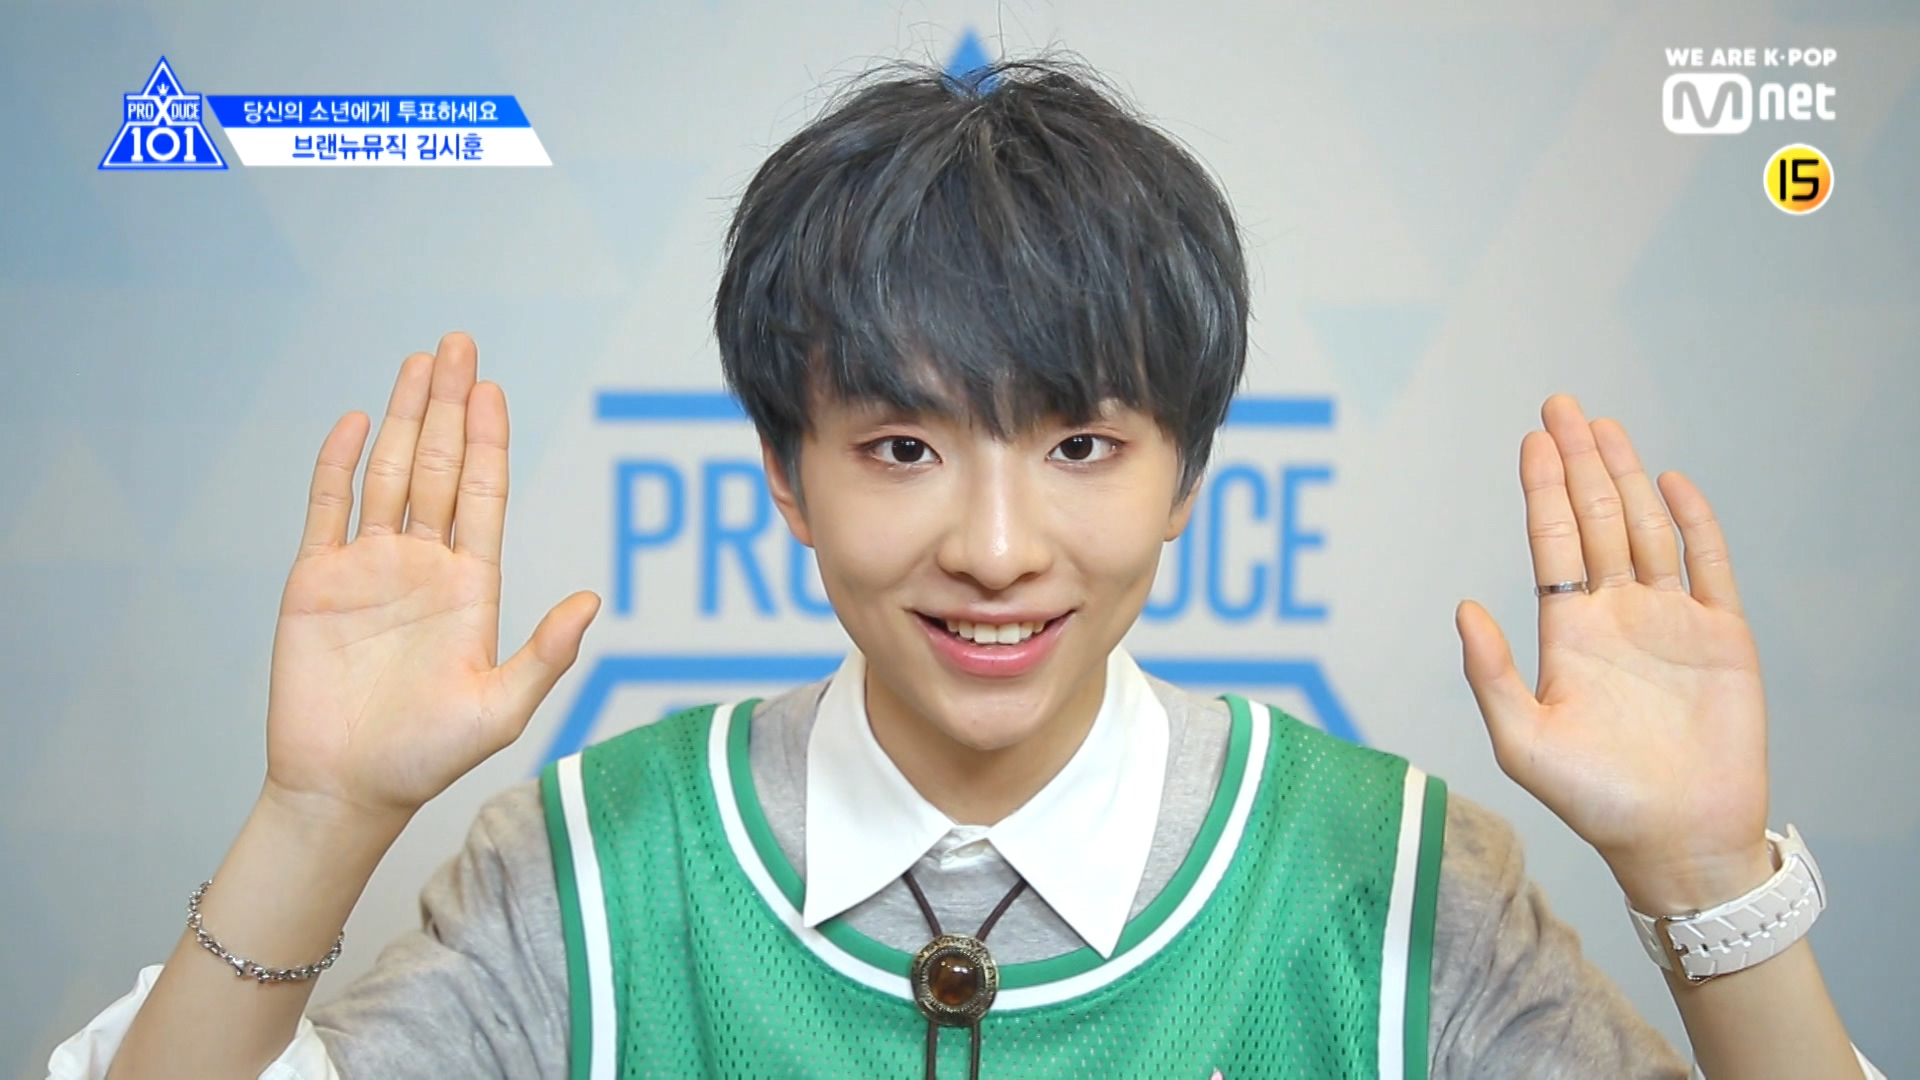 [PRODUCE X 101] EYE CONTACT CHALLENGE l KIM SI HUN(BRANDNEW MUSIC)